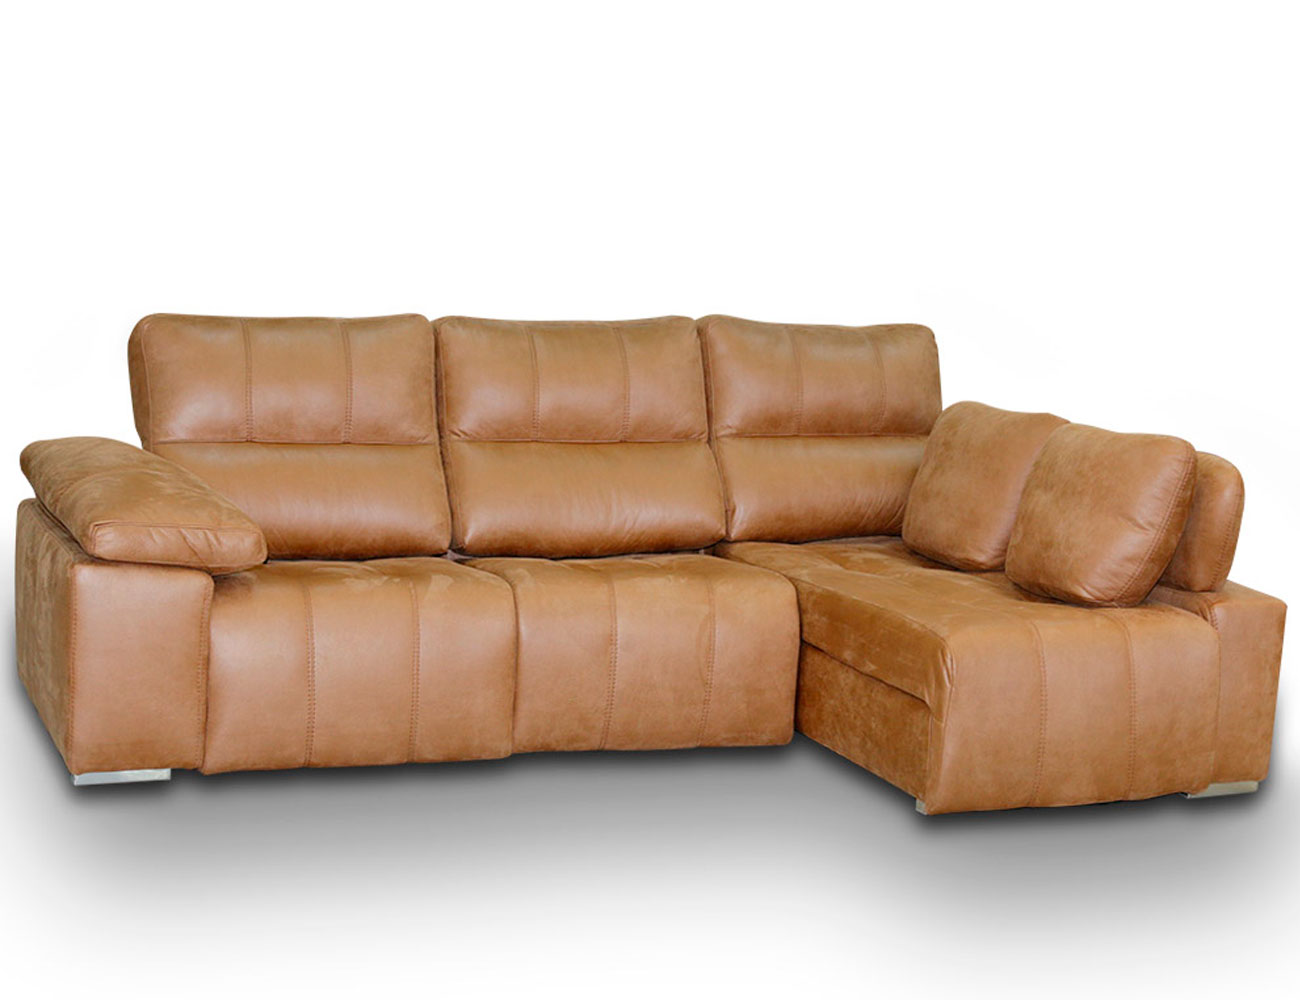 Sofa chaiselongue relax 2 motores anti manchas31